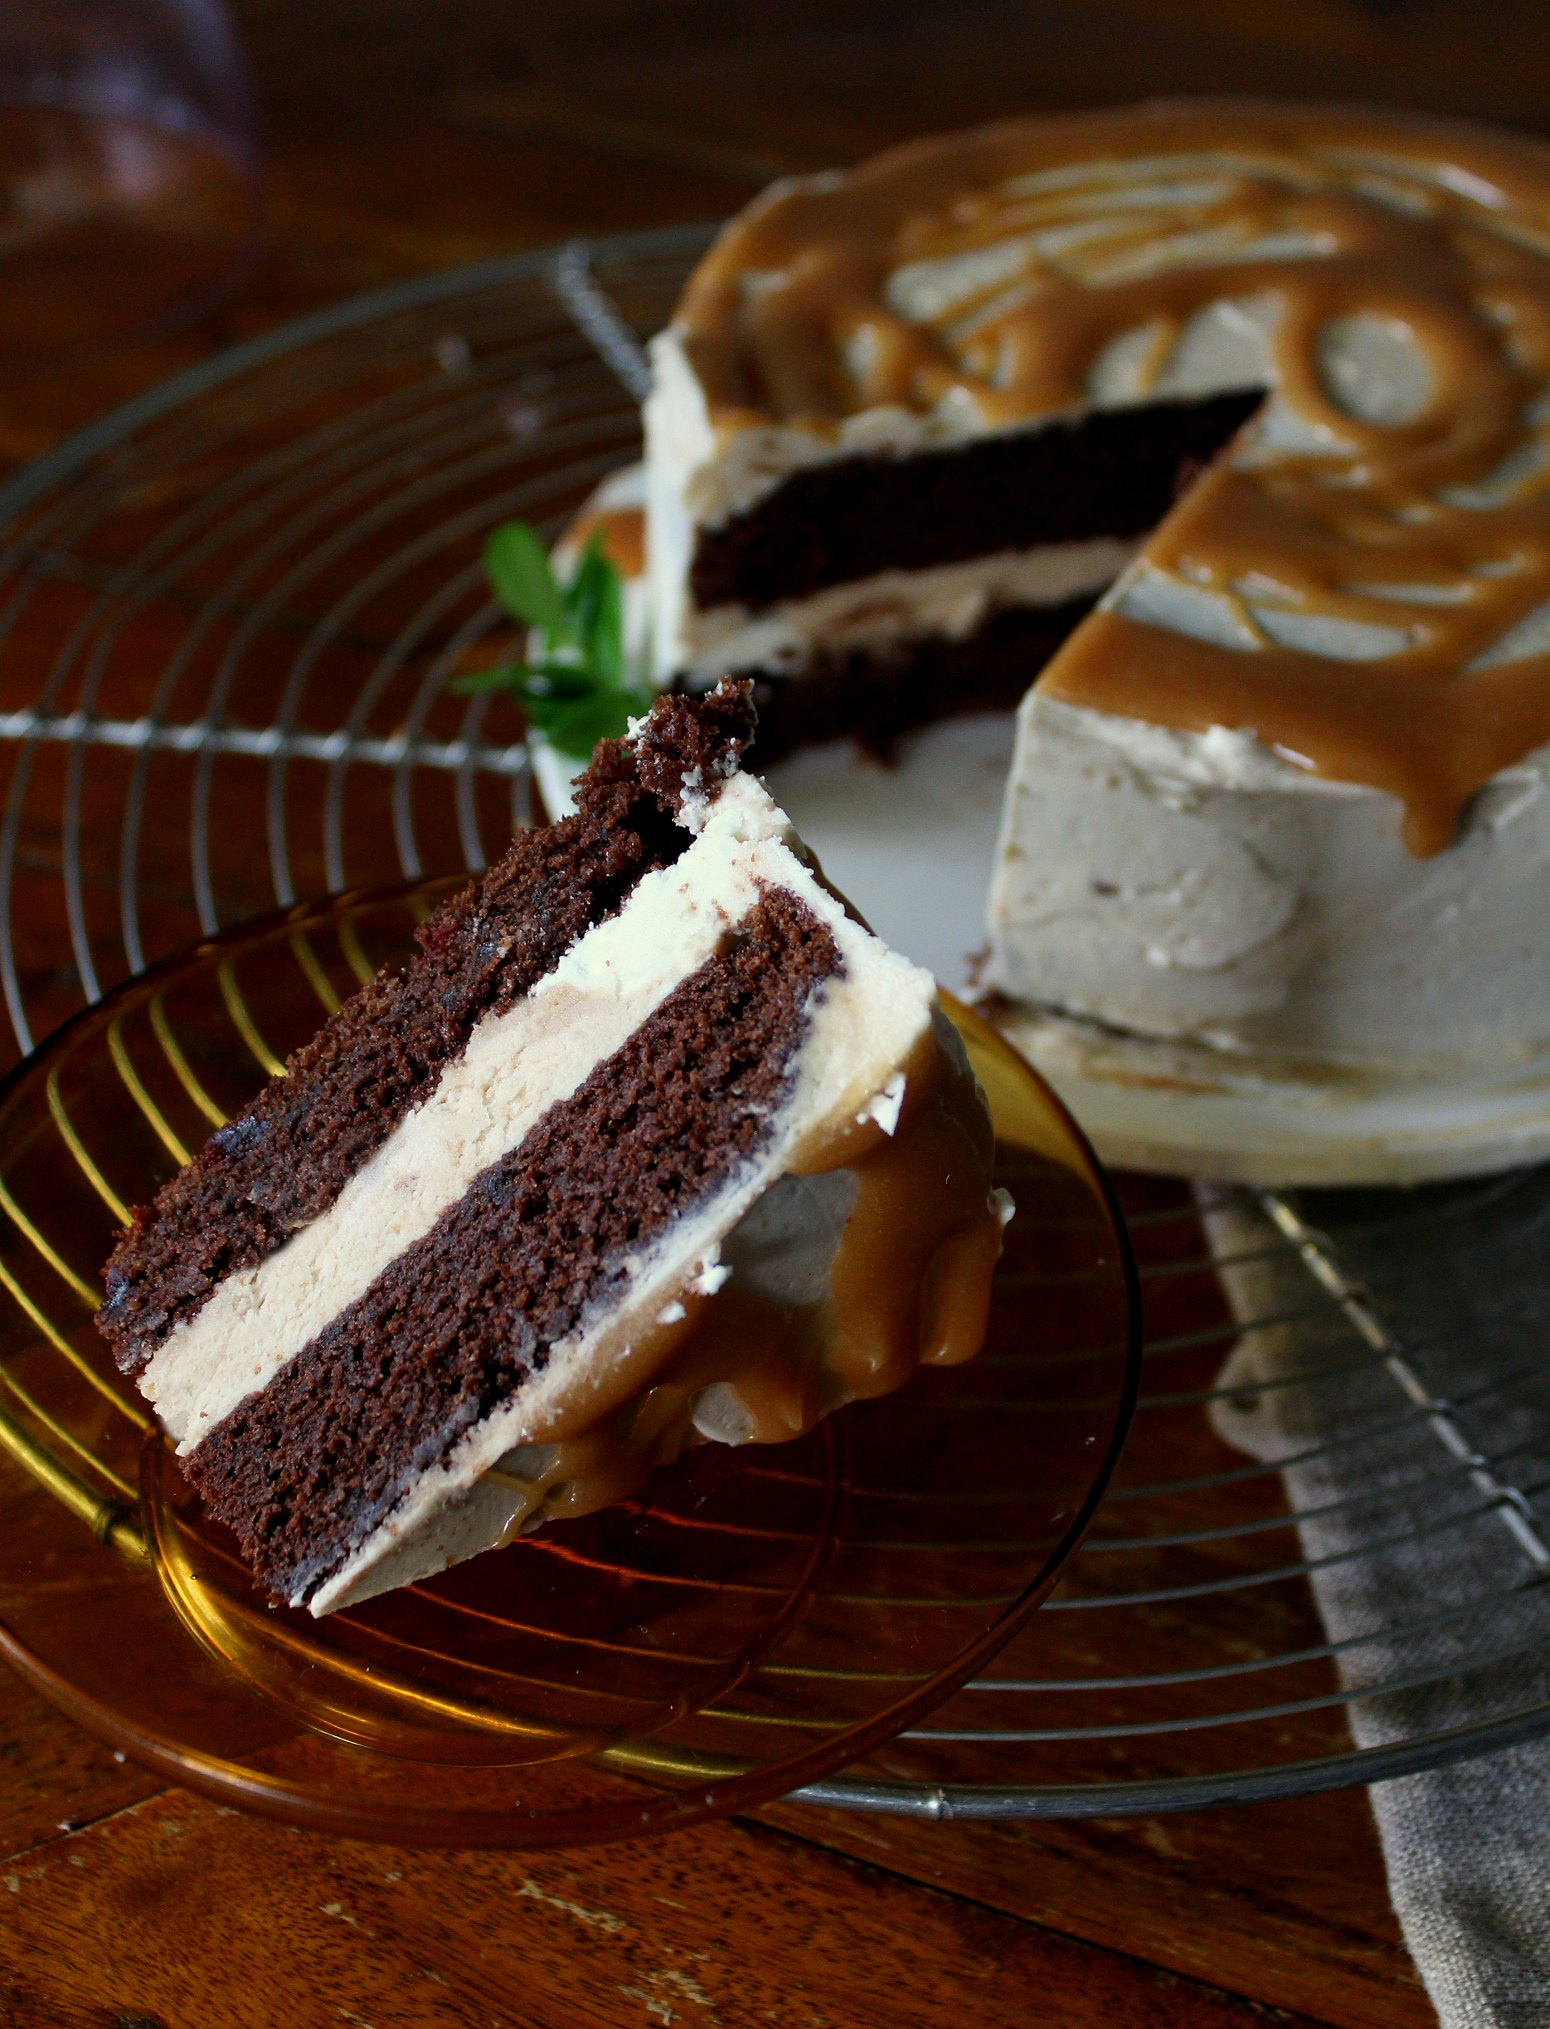 chocolate cake with salted caramel buttercream and drizzle cut slice.jpg